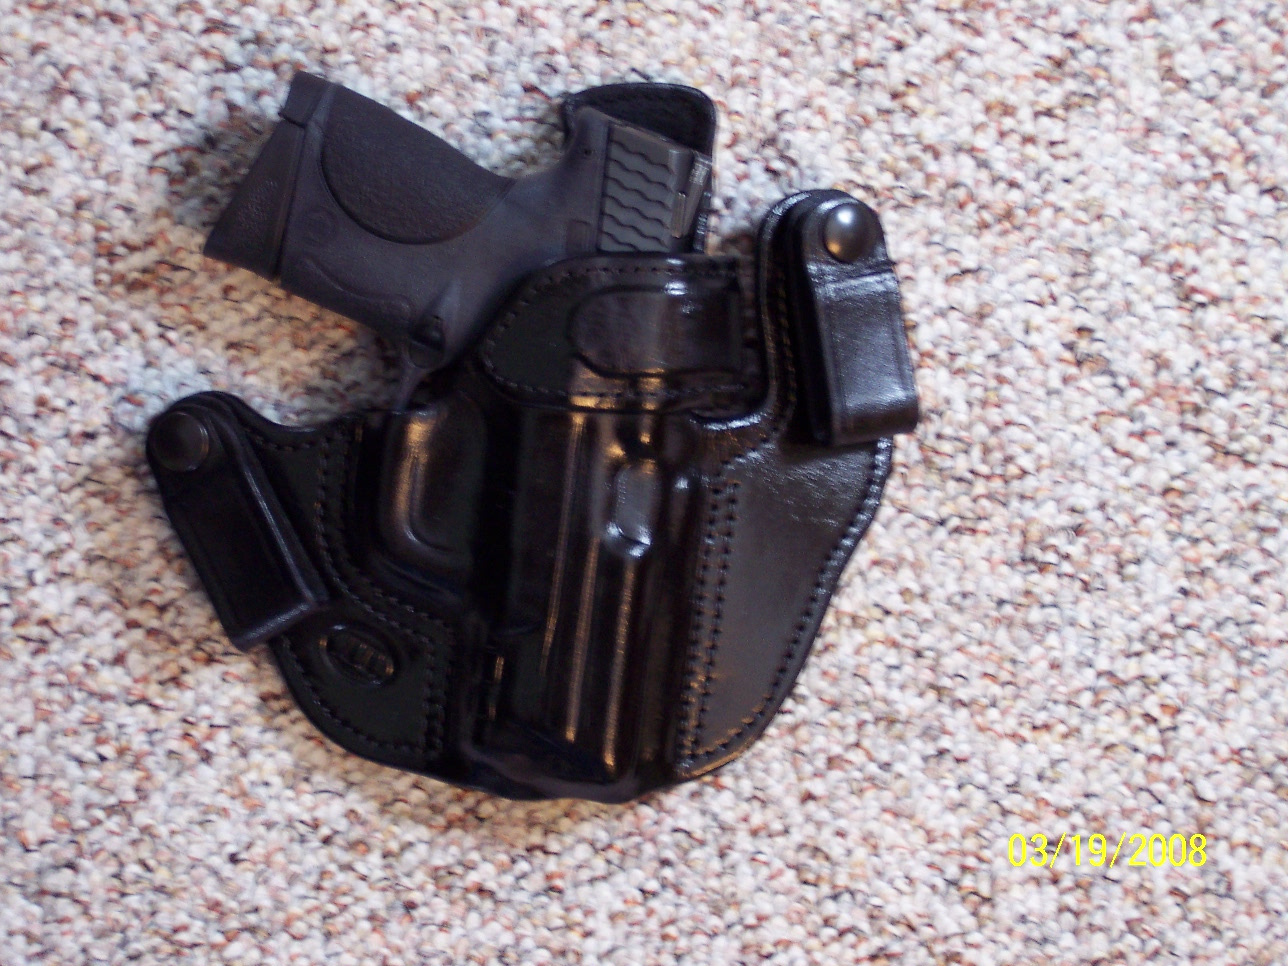 Love my new M&P 9c & TT holster-m-p-2.jpg